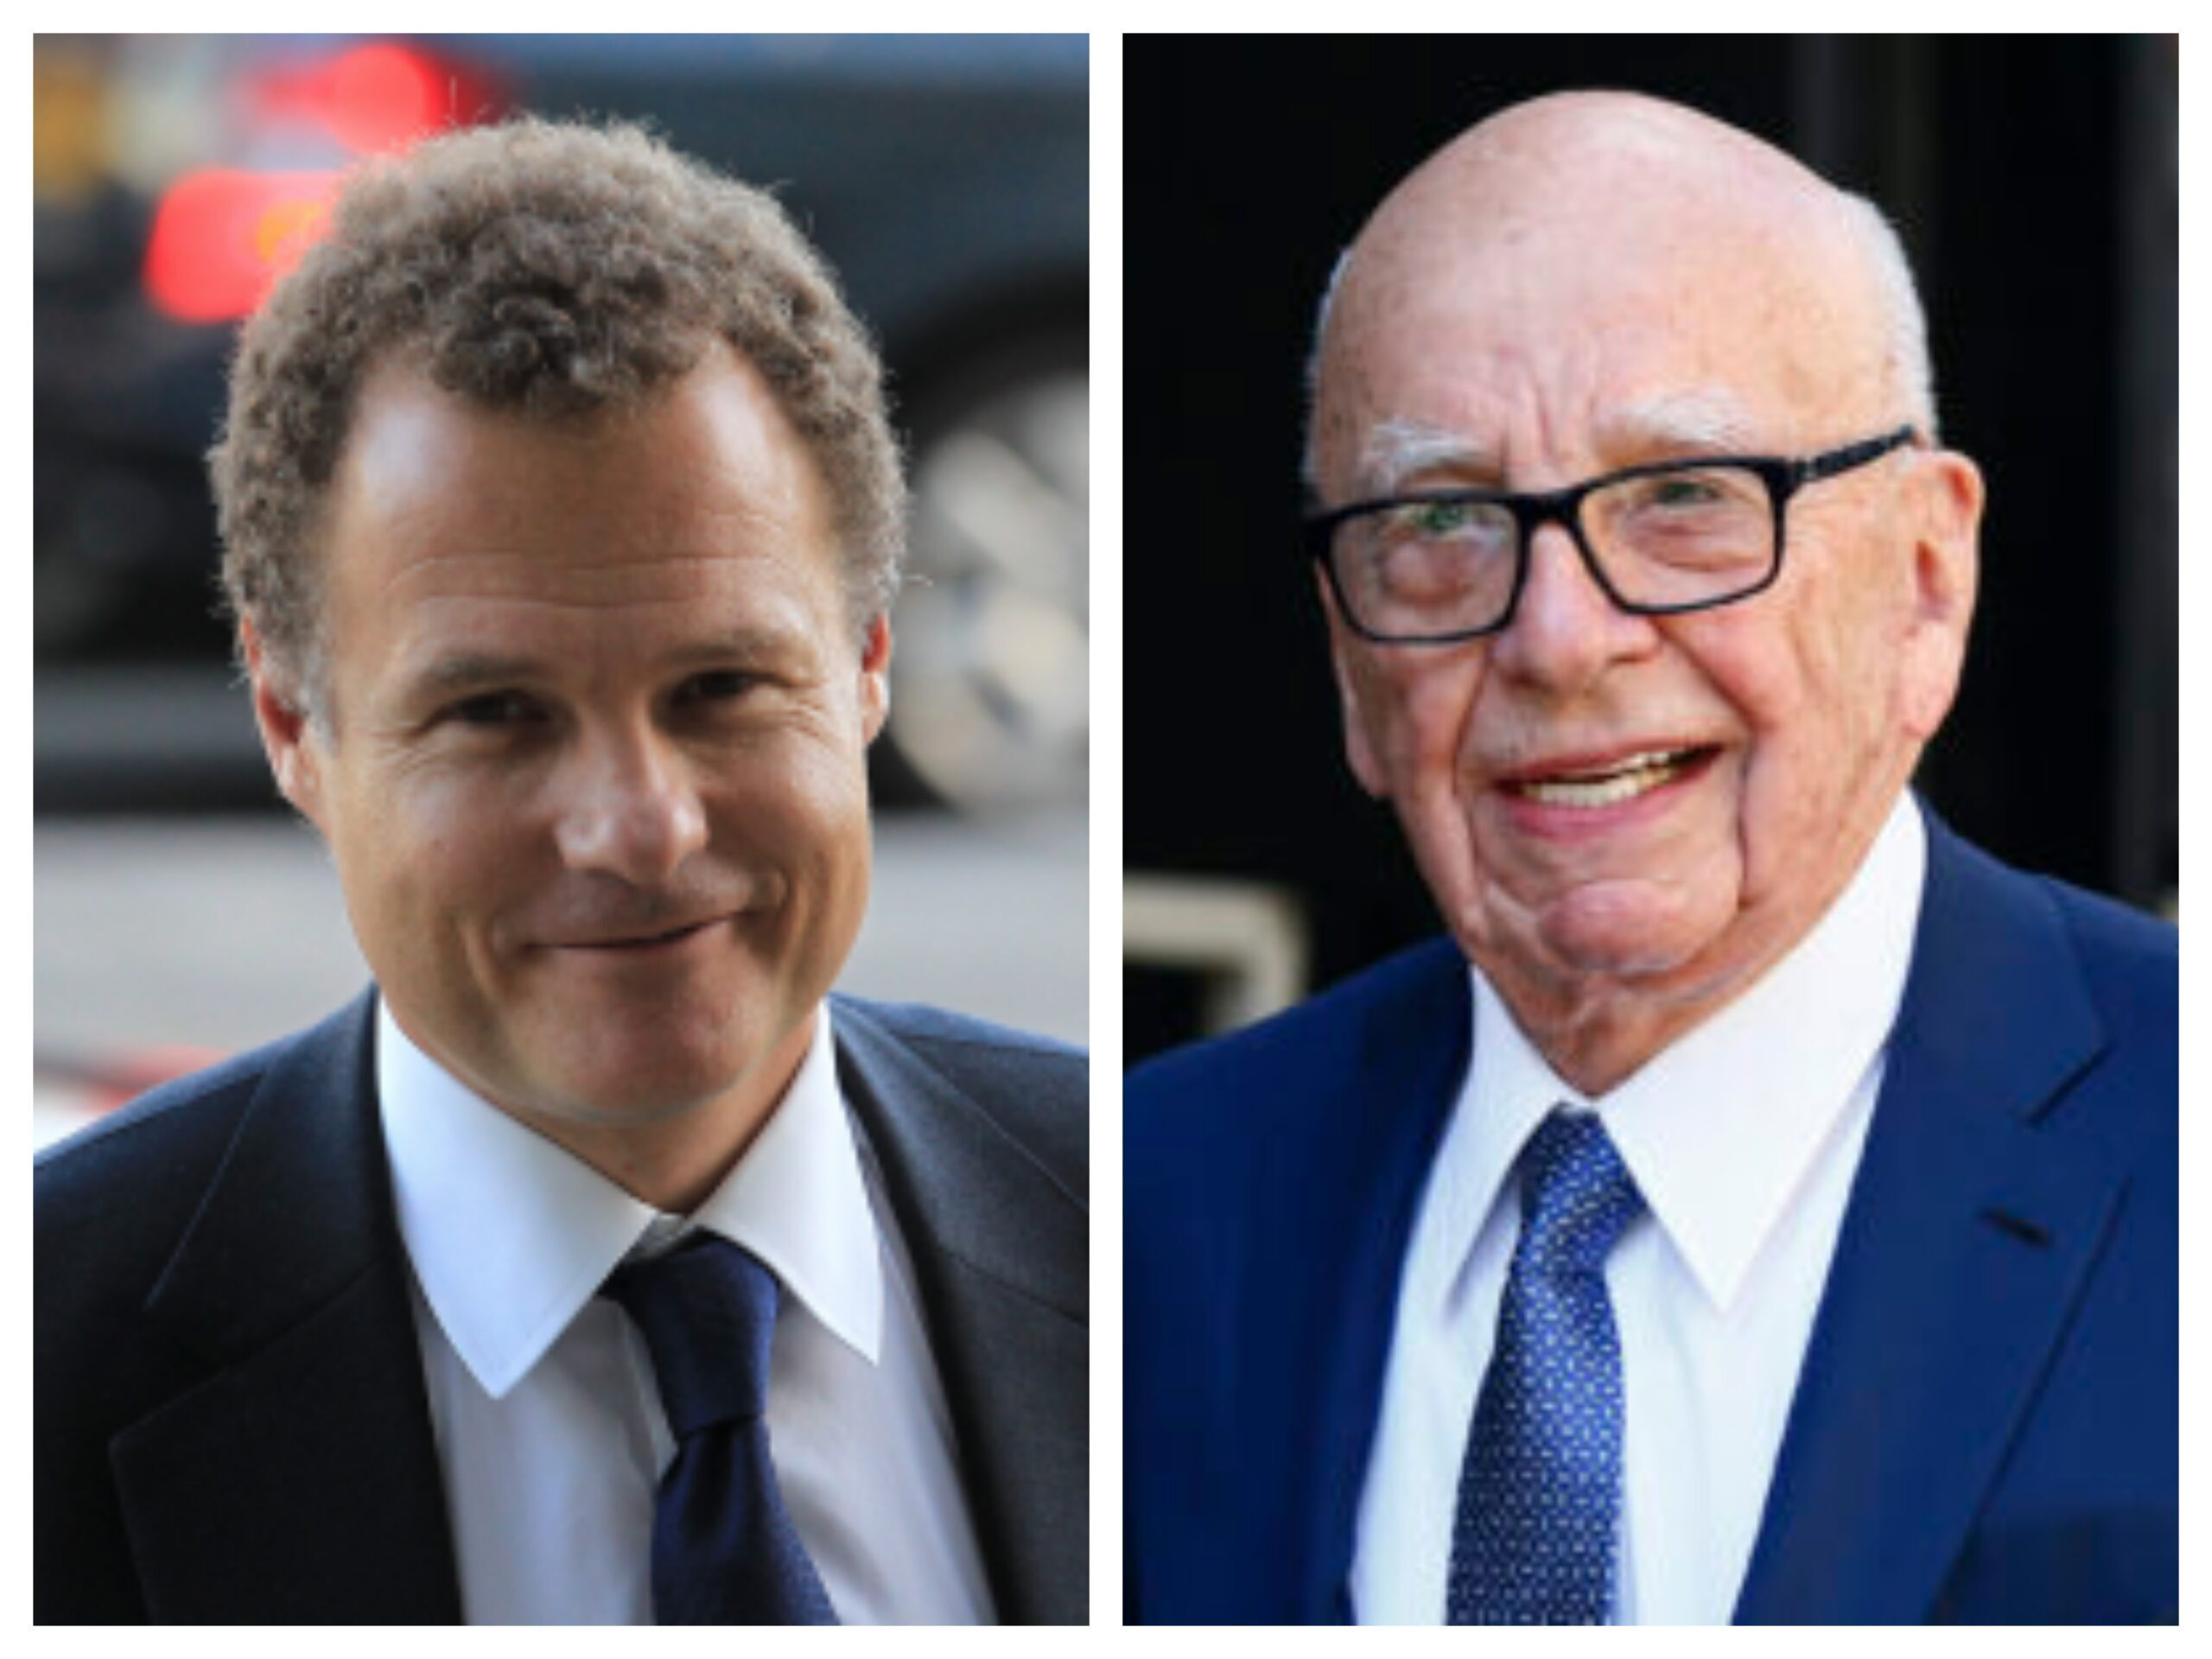 Lord Rothermere and Rupert Murdoch